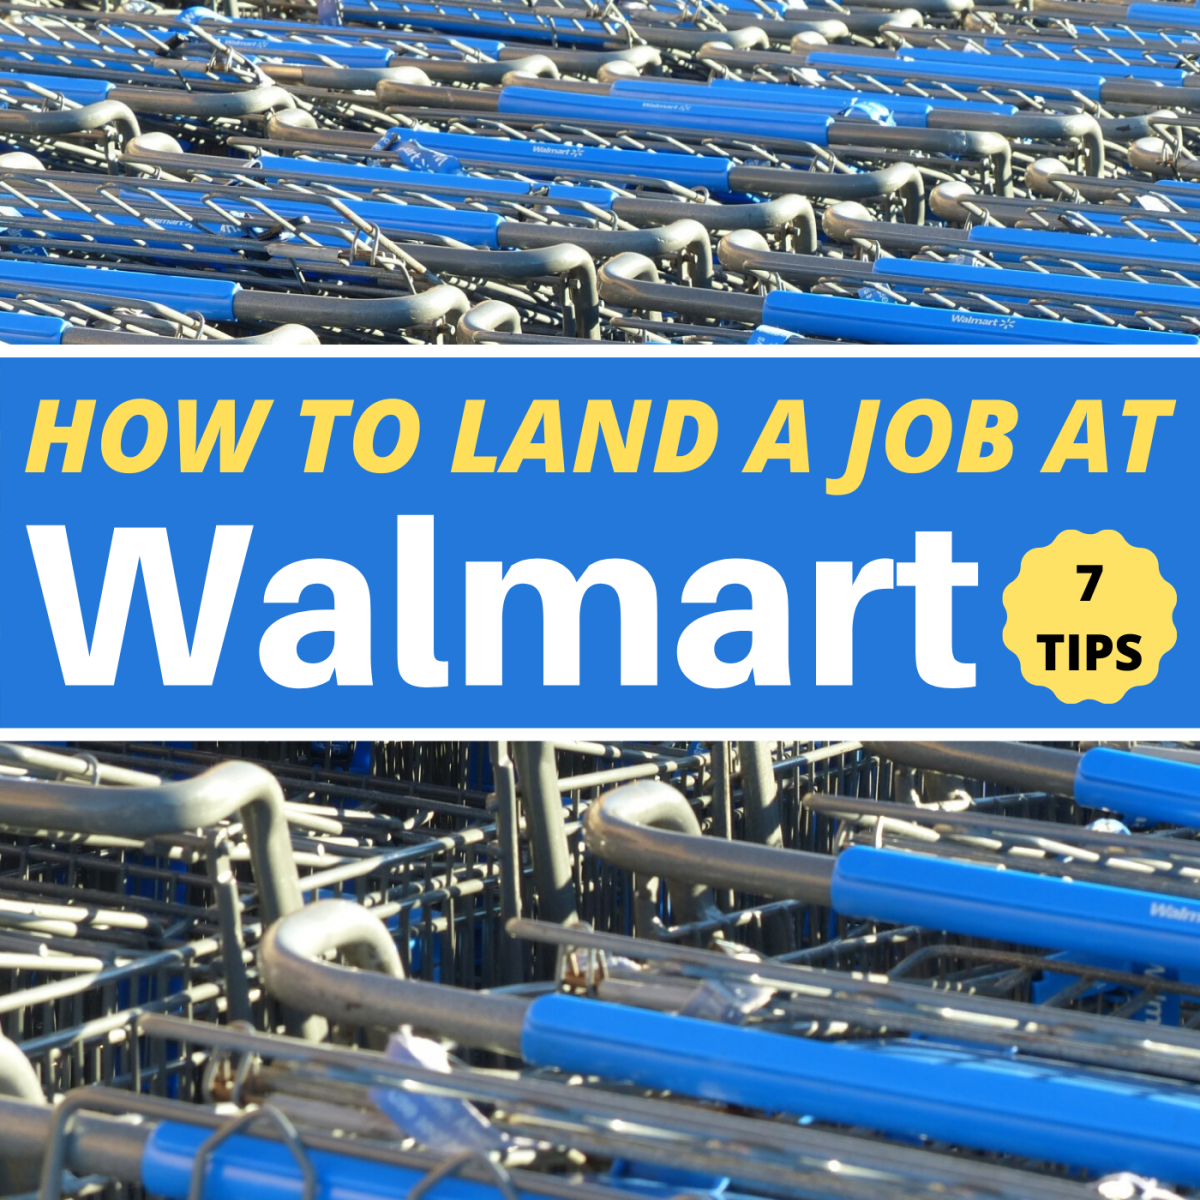 Follow the seven pieces of advice in this article to increase your chances of getting hired at Walmart.